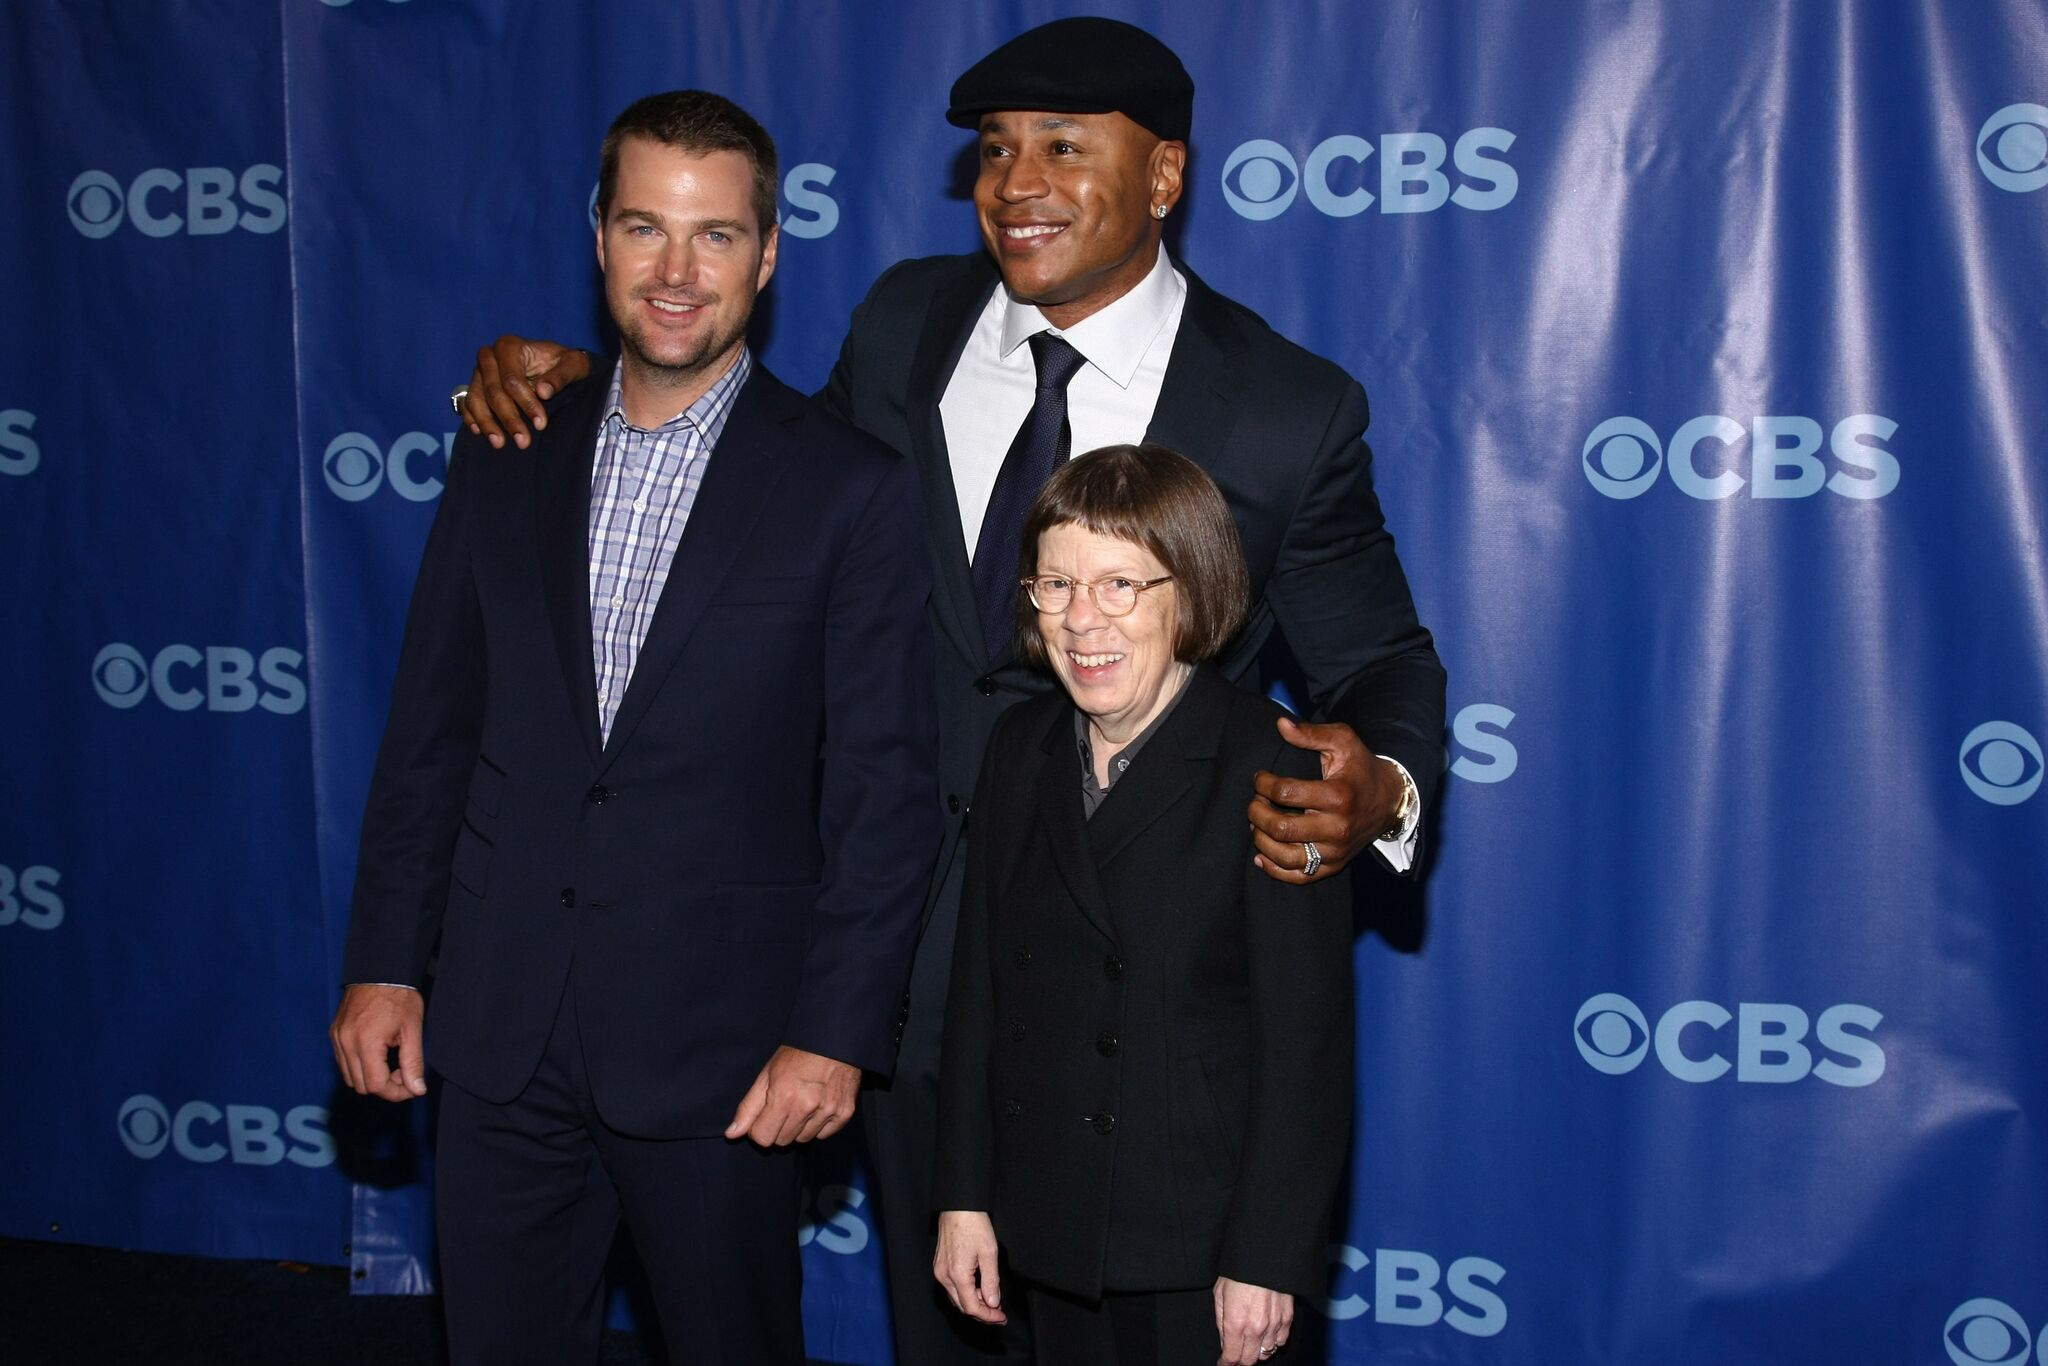 Image Credit: Getty Images / Actress and Oscar winner, Linda Hunt poses for a photograph with her cast members.